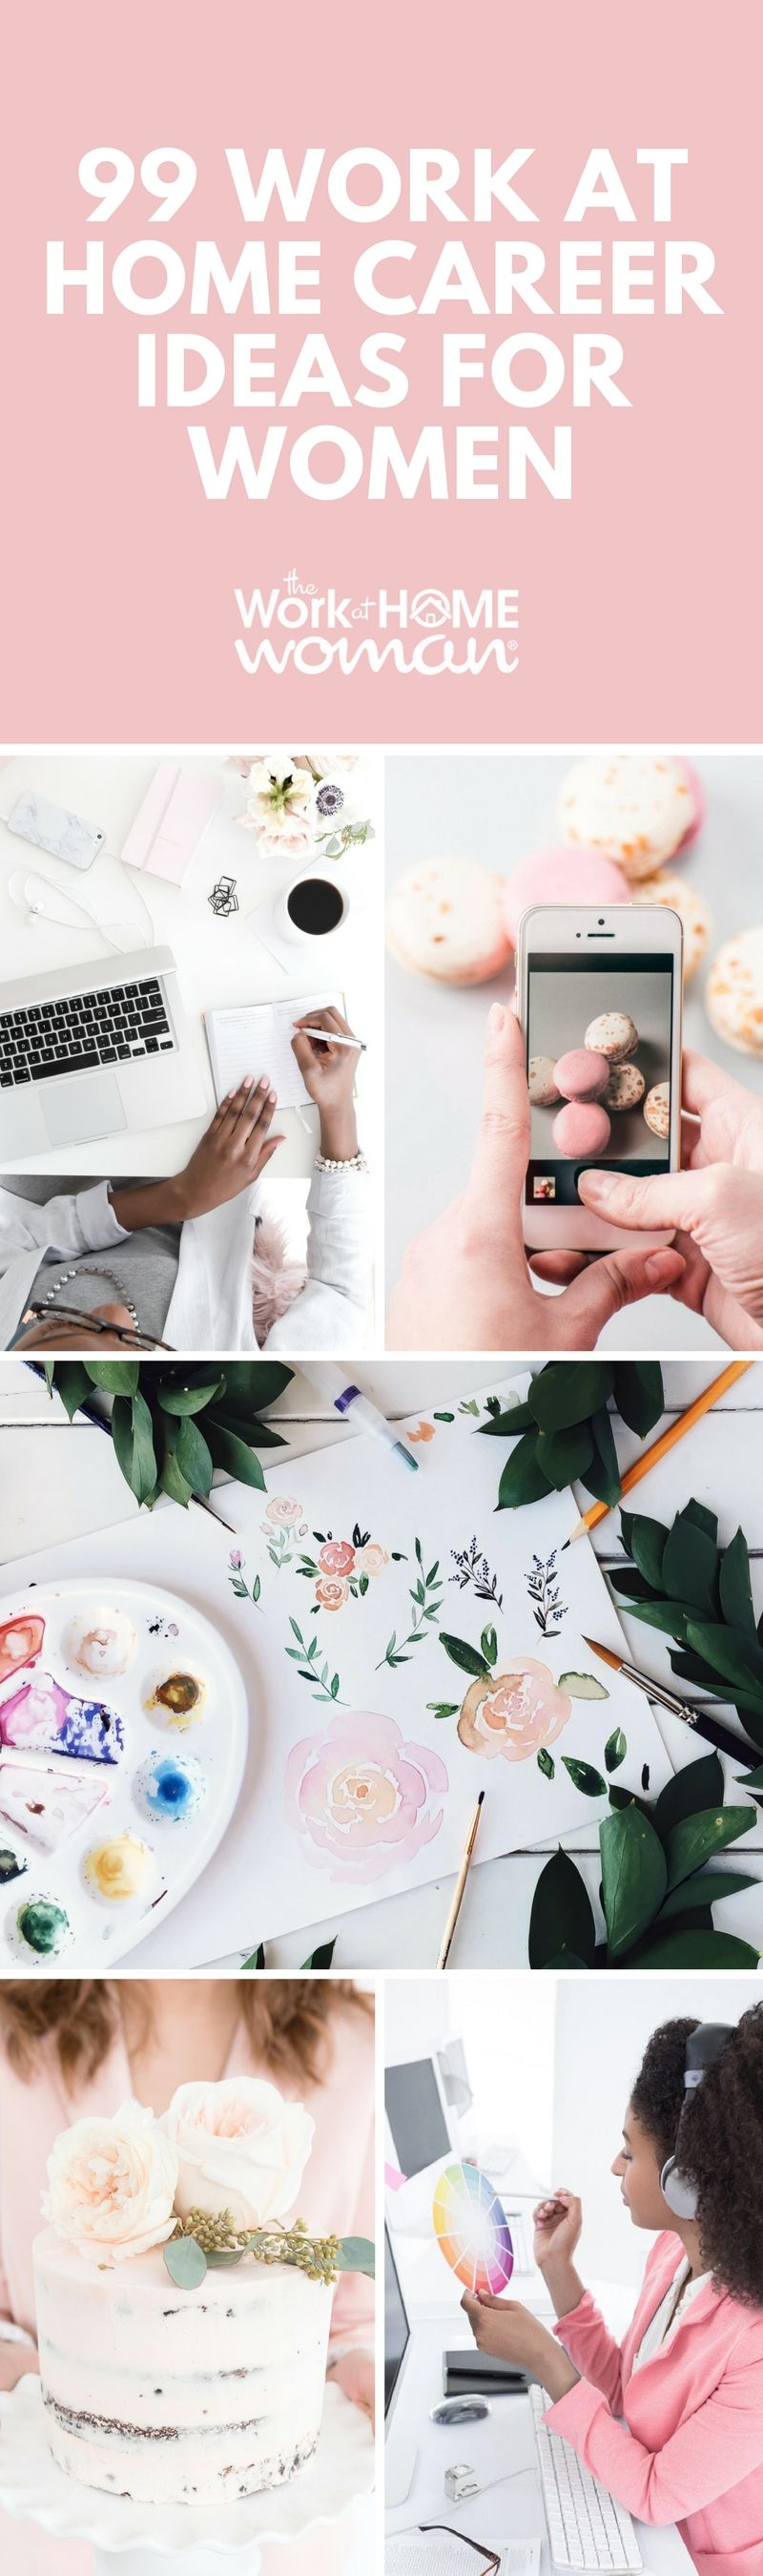 99 Work-at-Home Career Ideas for Women   Business, Creative and ...